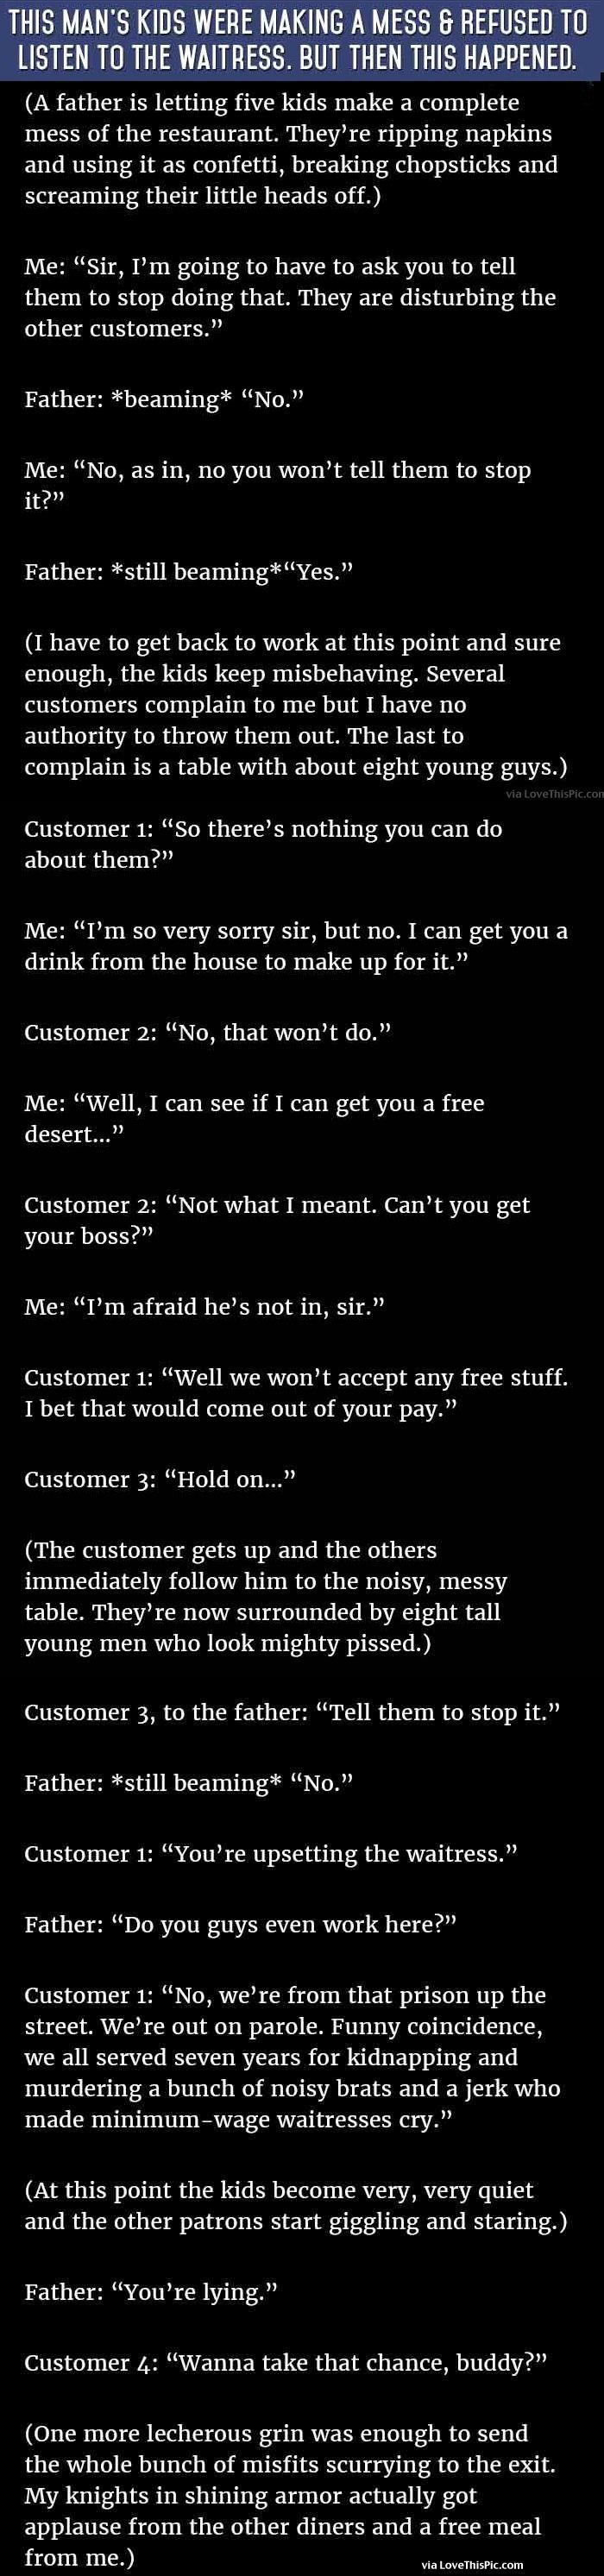 This Man's Kids Were Making A Mess And Refused To Listen To The Waitress But Then This Happened funny jokes story lol funny quote funny quotes funny sayings joke hilarious humor stories funny jokes best jokes ever best jokes